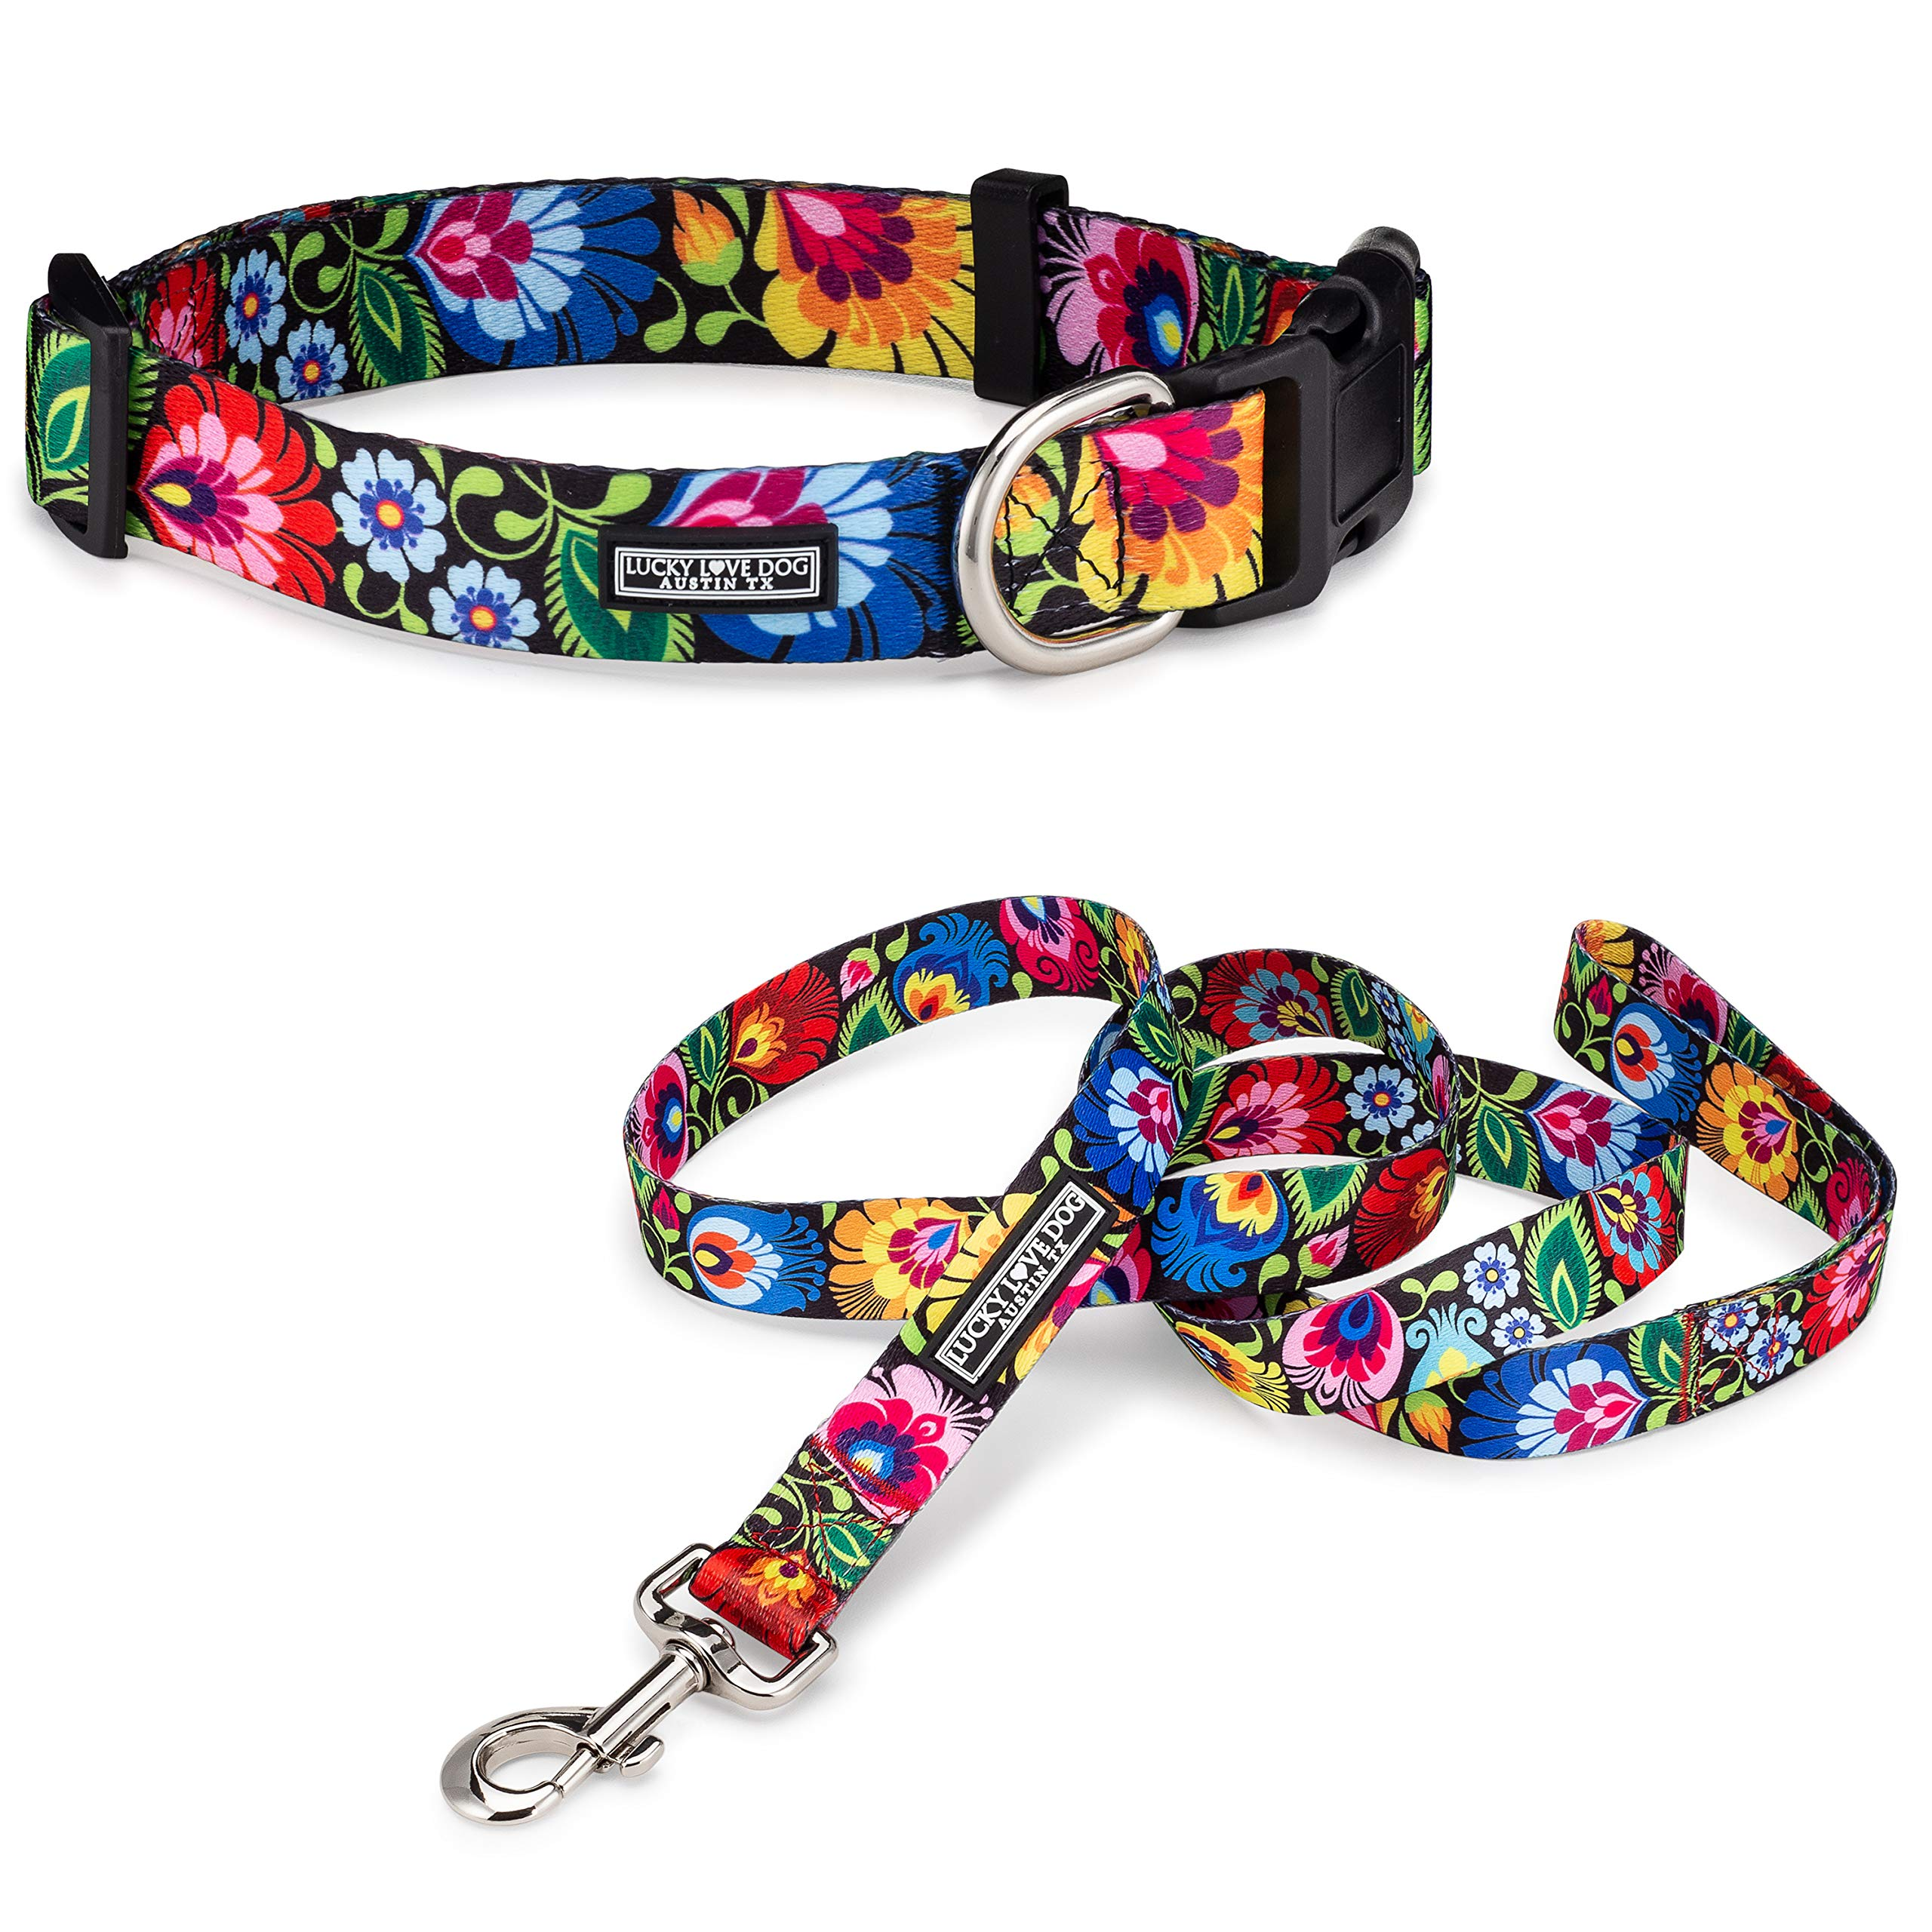 Lucky Love Dog Collars & Leash Sets | Floral Dog Collar | Female Dog Collar | Flower Dog Collar | Part of Purchase Donated to Dog Rescue (Blackbird Collar/Leash Combo, Small) by Lucky Love Dog